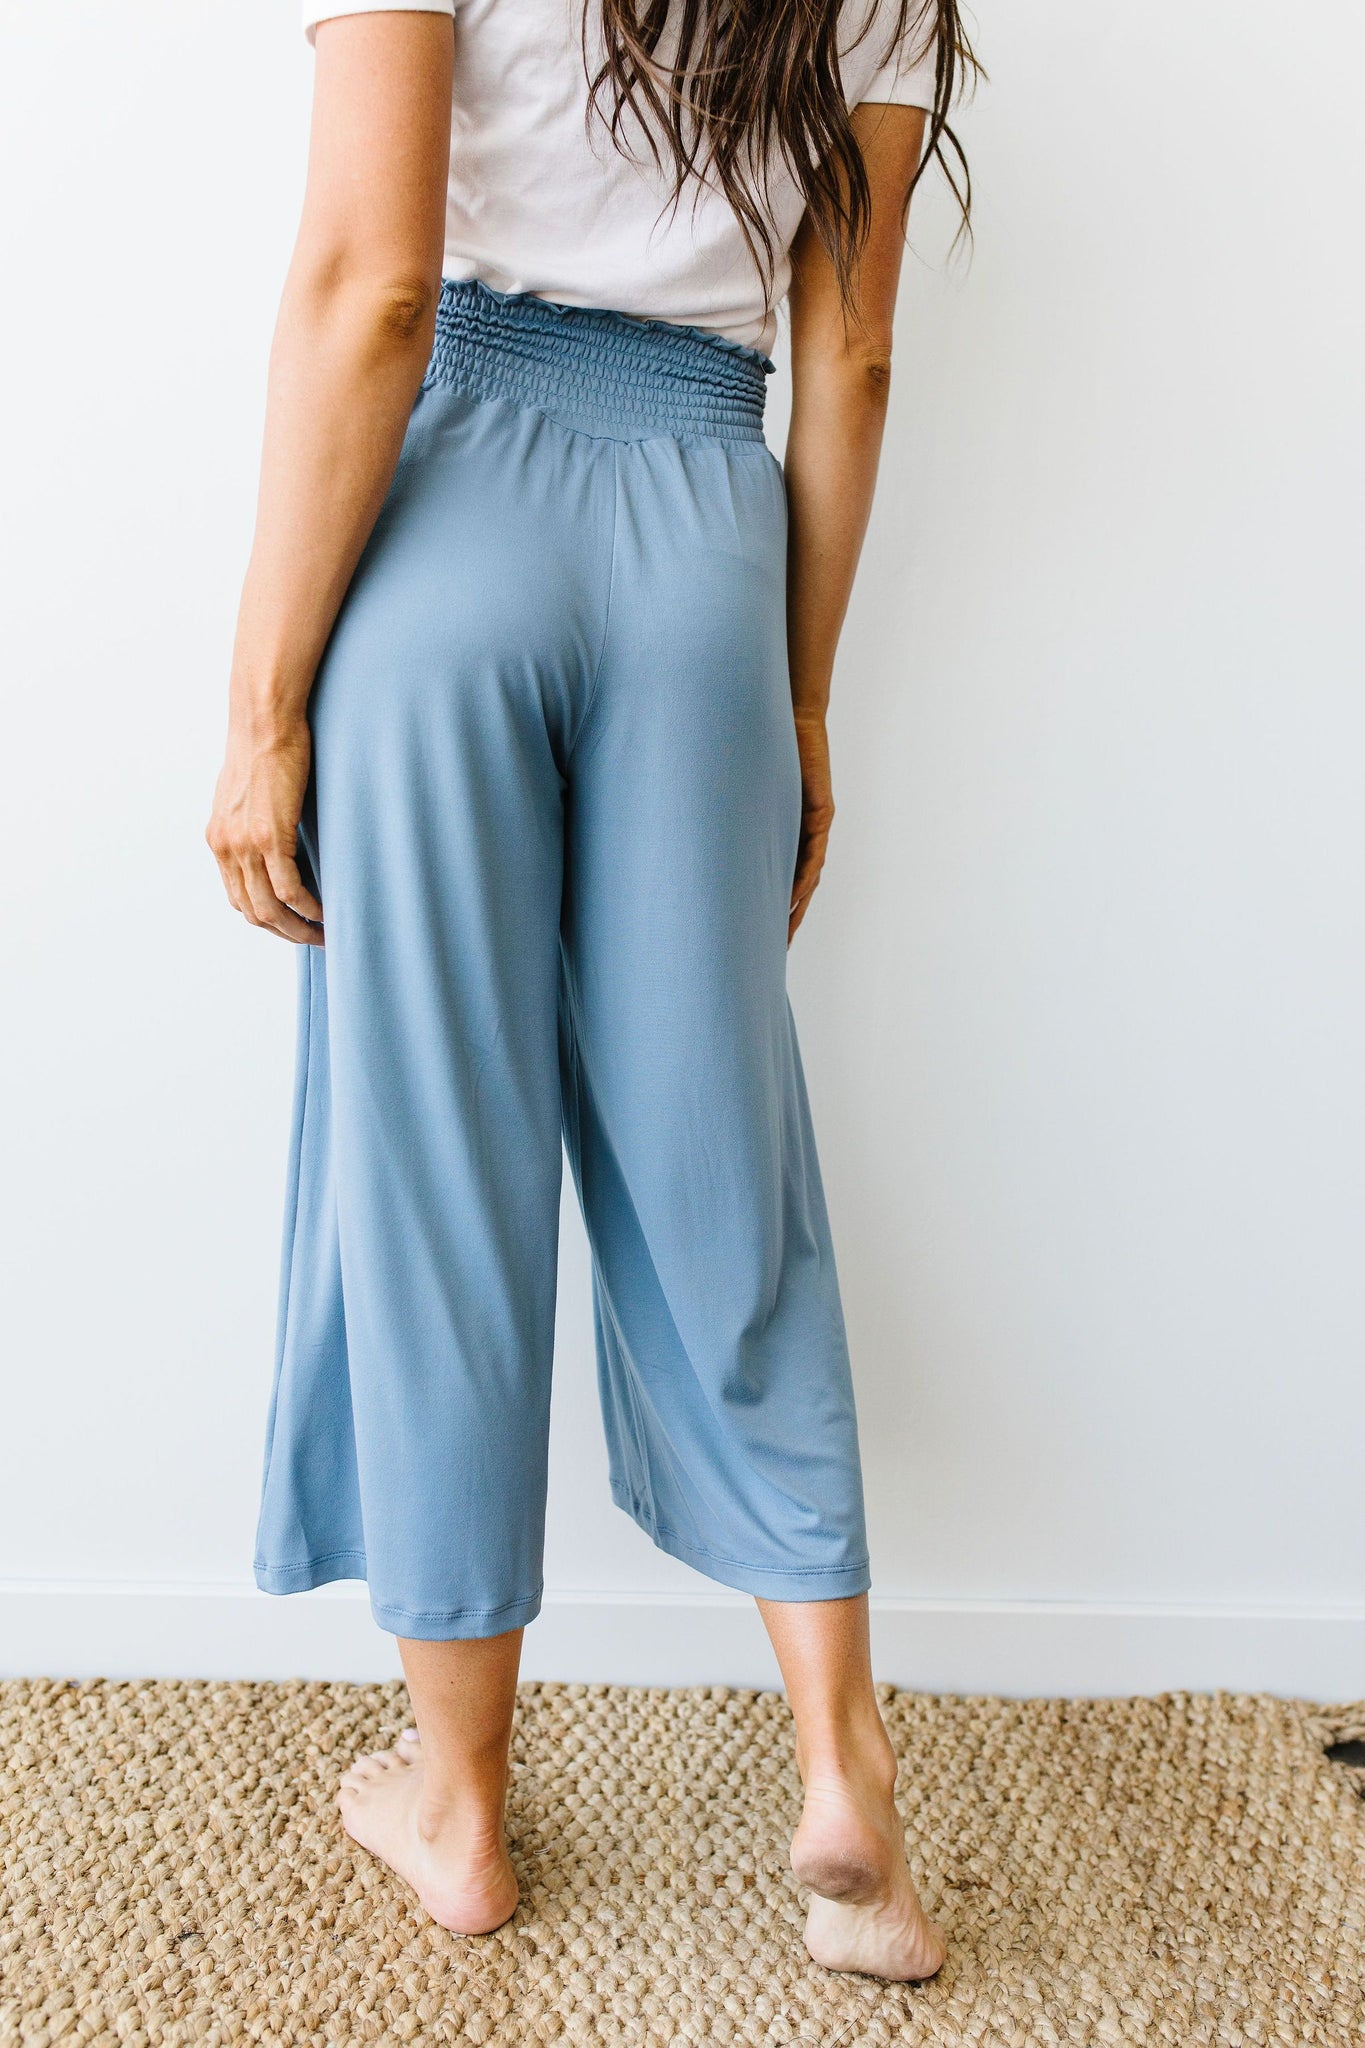 Go Get 'Em Gaucho Pants In Blue Gray